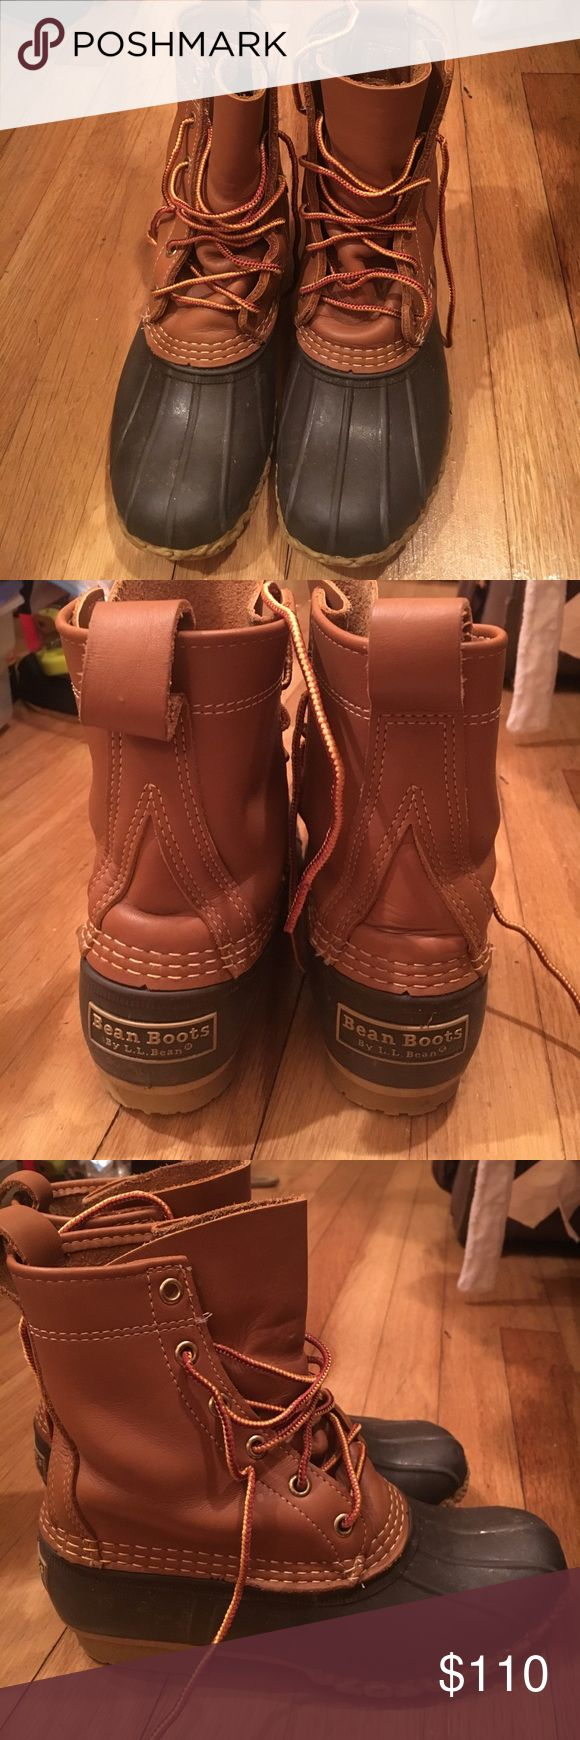 L.L. Bean boots women's size 6/6 1/2 Rarely worn (maybe 3 times). Women's L.L. Bean boots. Don't know exact size but I am a 6 6 1/2. L.L. Bean Shoes Winter & Rain Boots